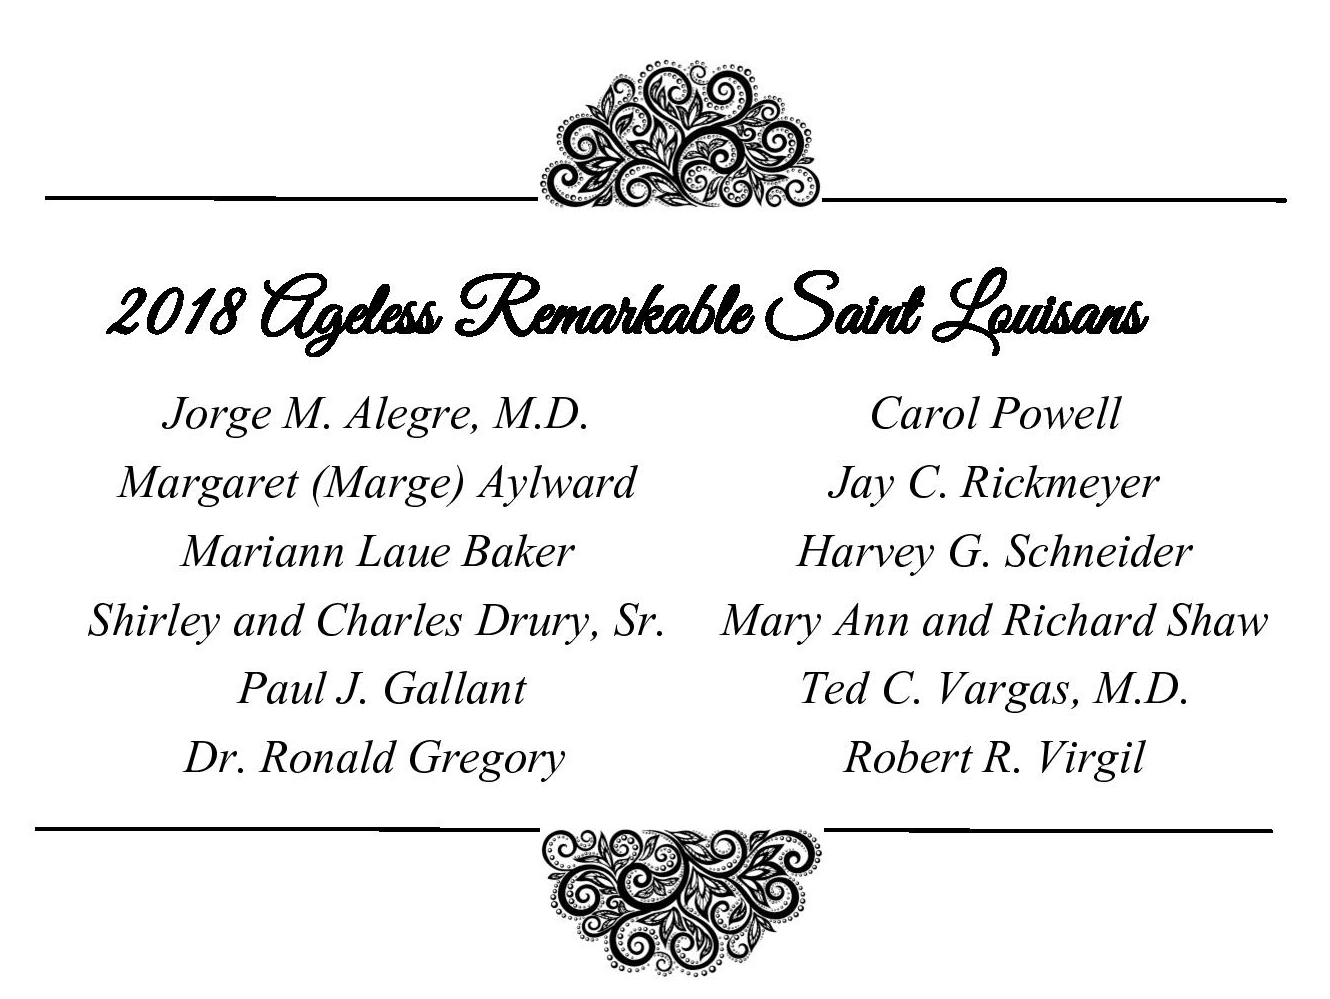 The 2018 St. Andrew's Ageless Remarkable St. Louisans Honorees